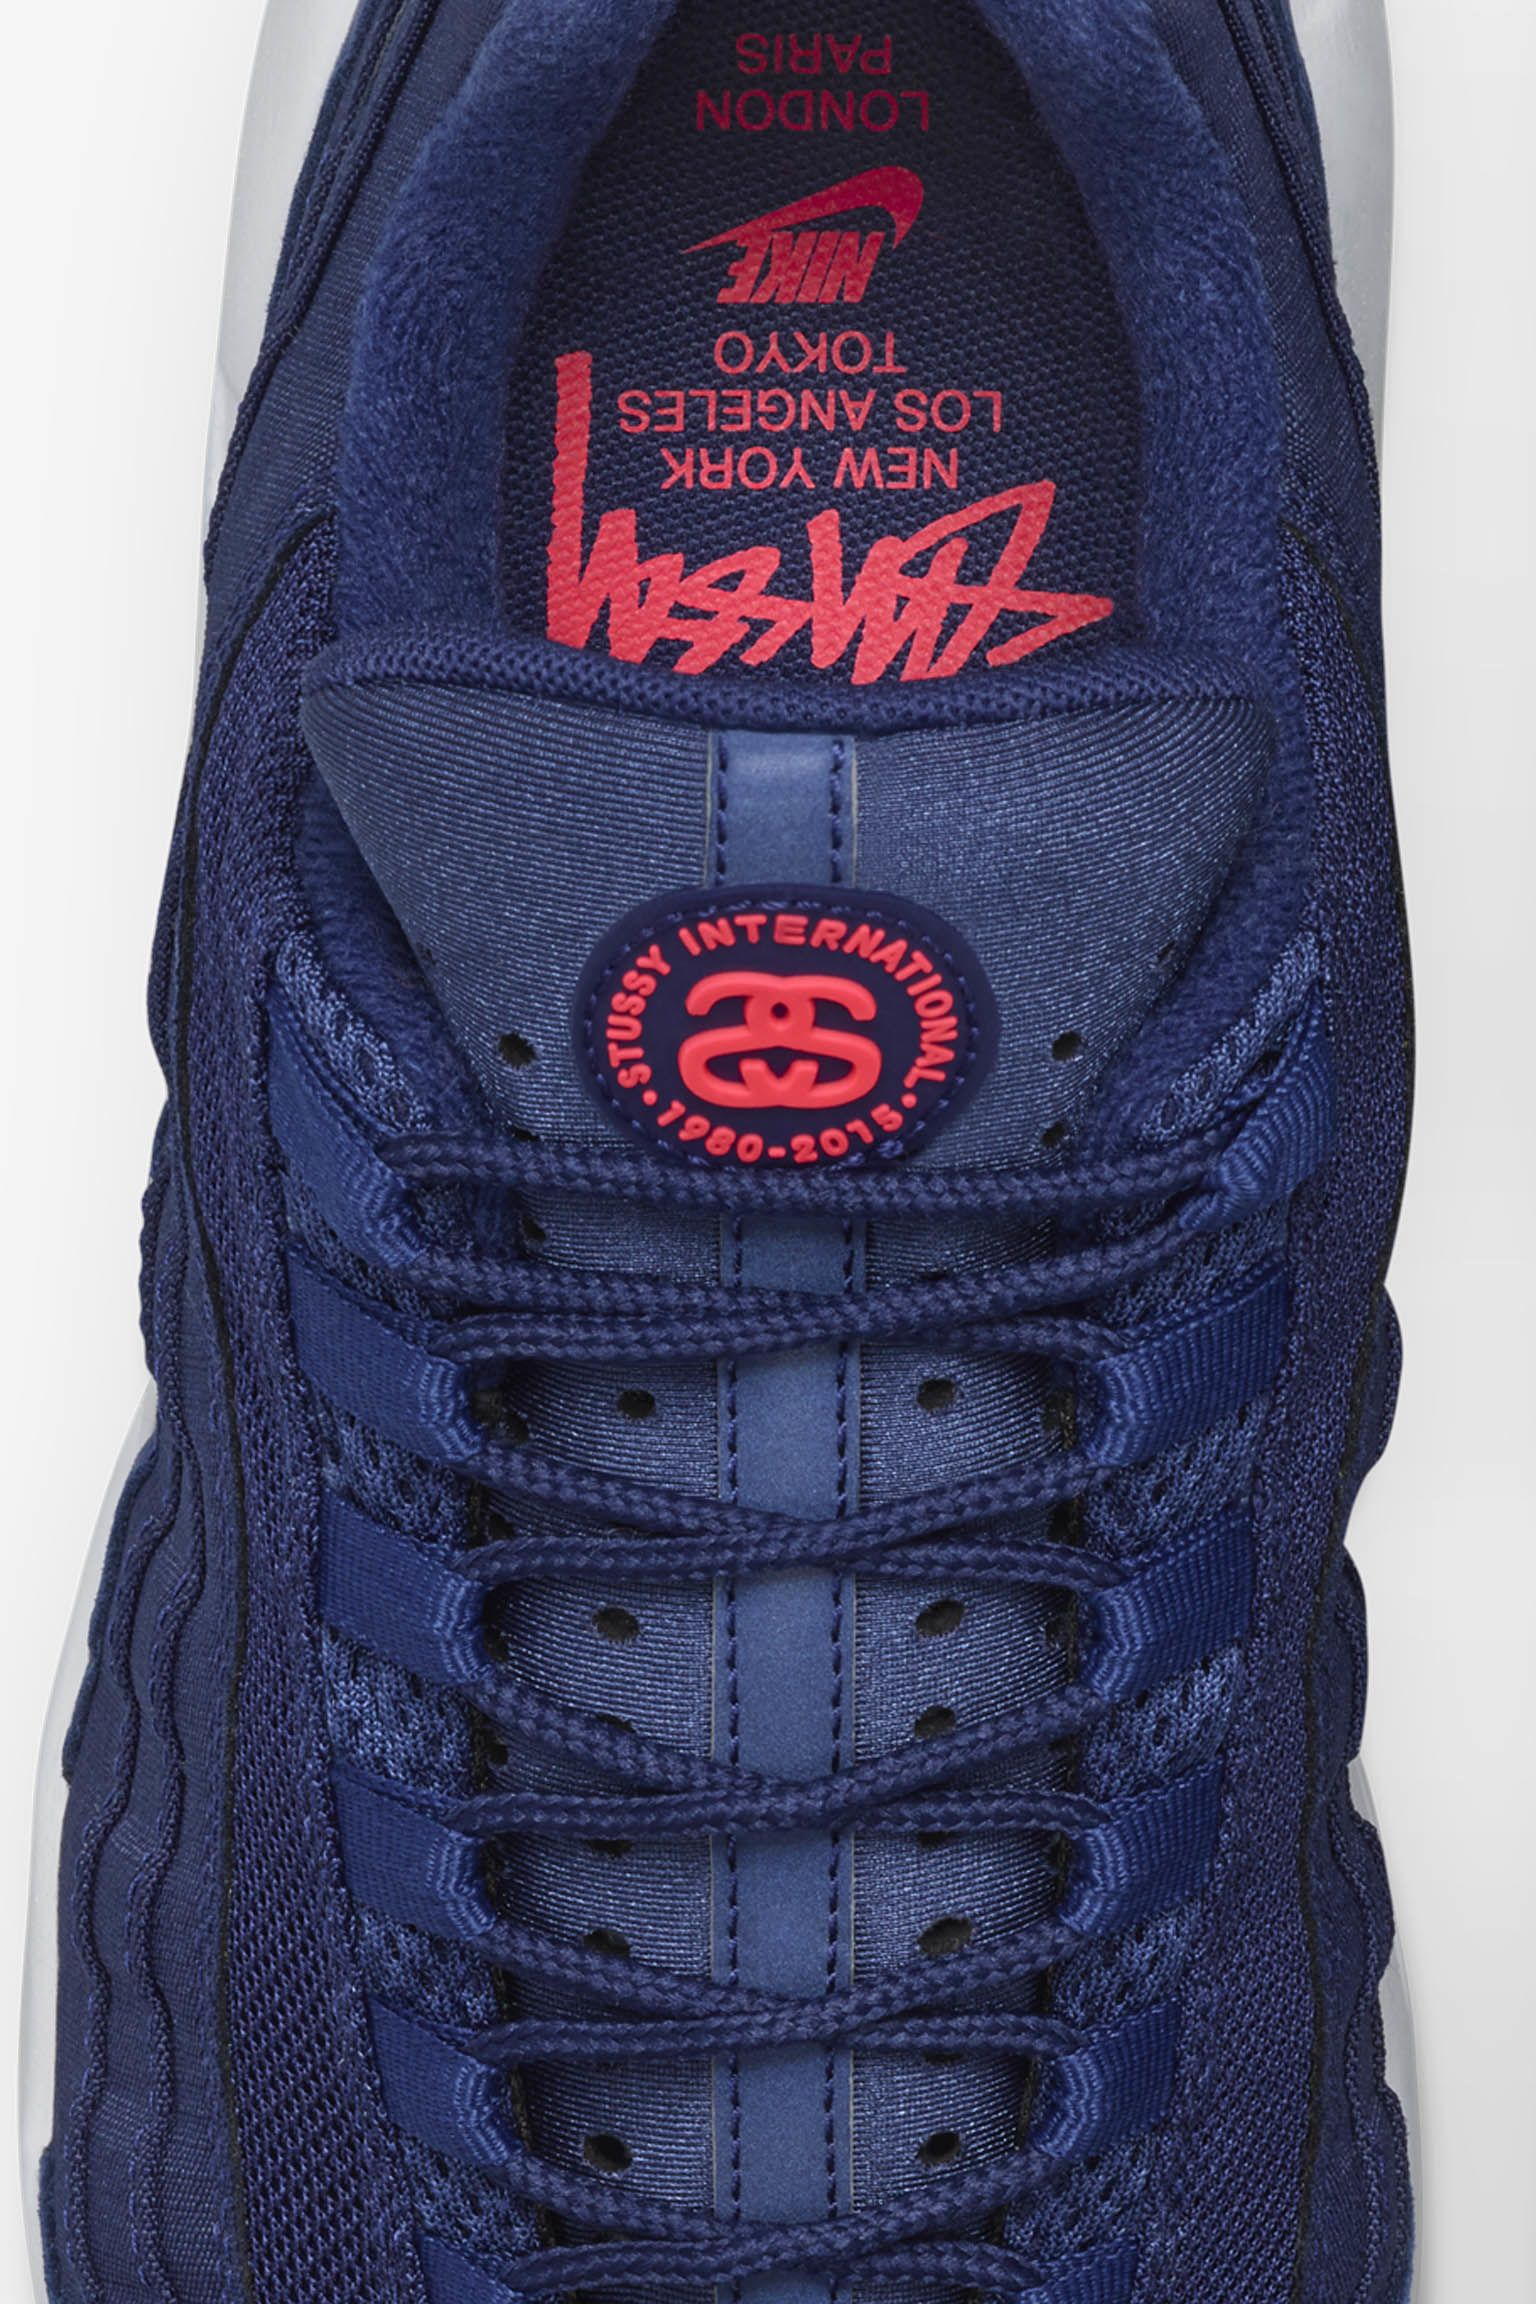 Nike Air Max 95 Stussy 'Loyal Blue'